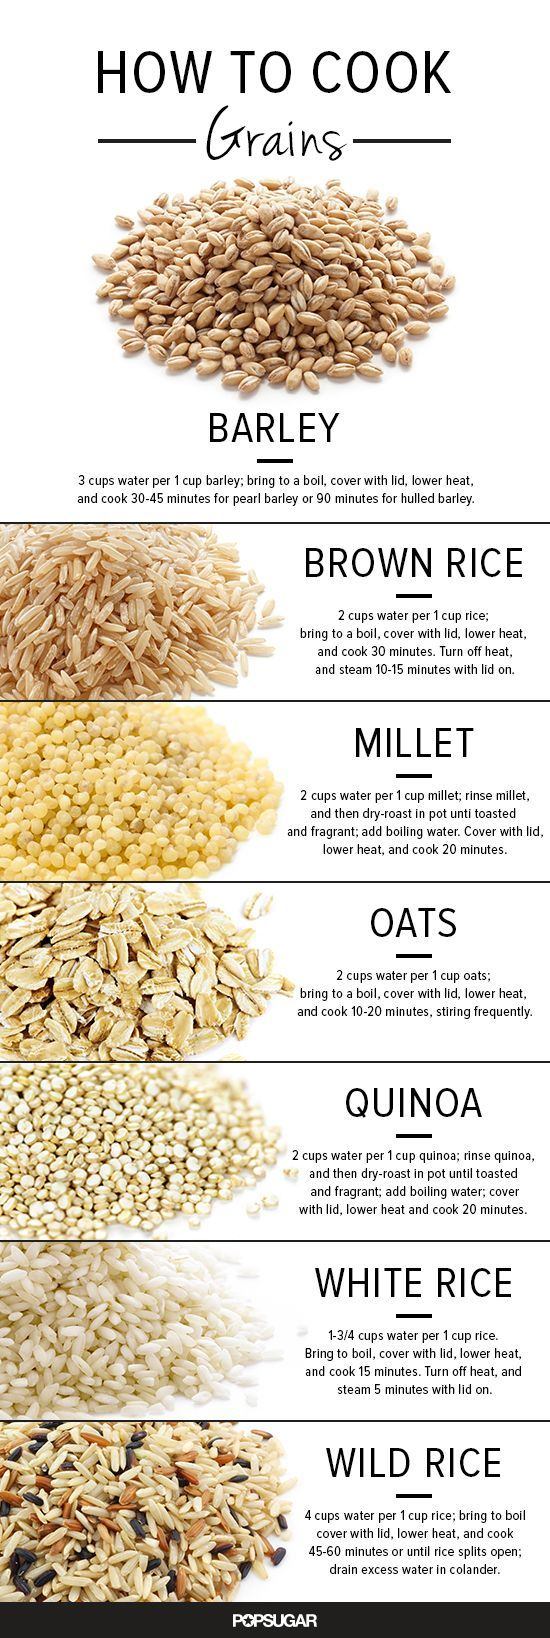 Great guide to cooking your grains good things pinterest shy 39 m charts and how to cook - Six alternative uses of rice at home ...